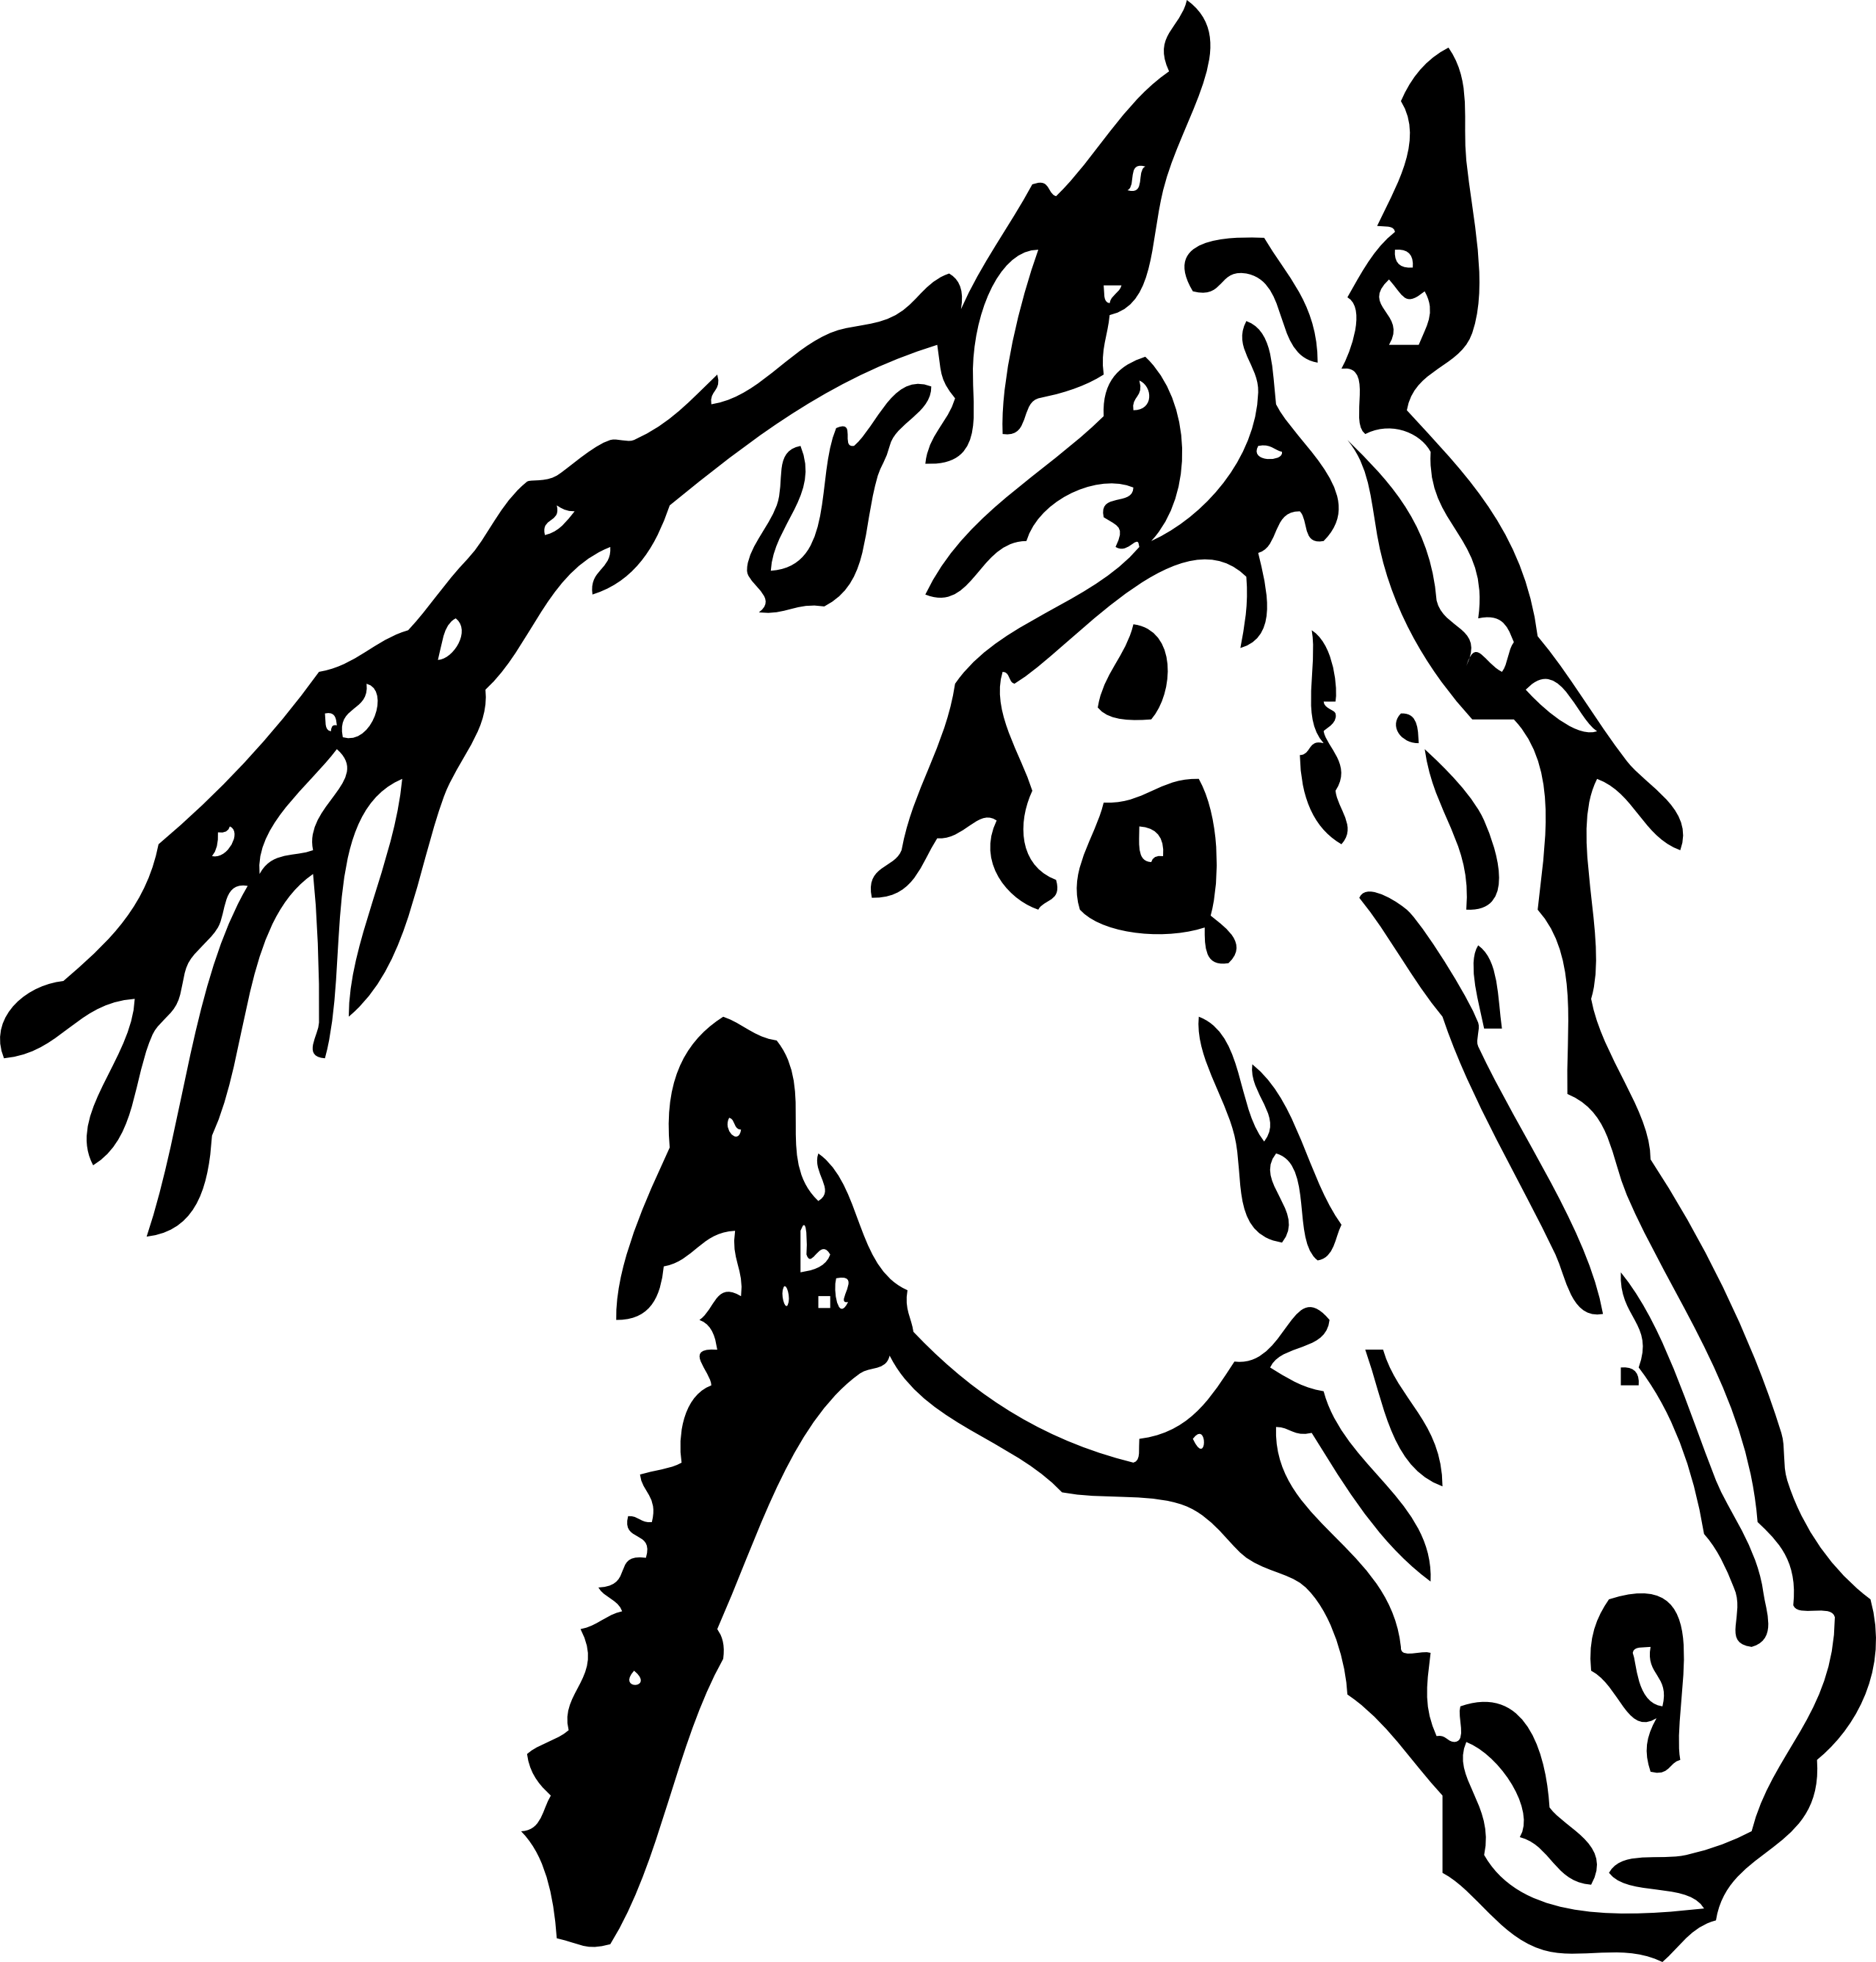 Clipart unicorn head black and white.